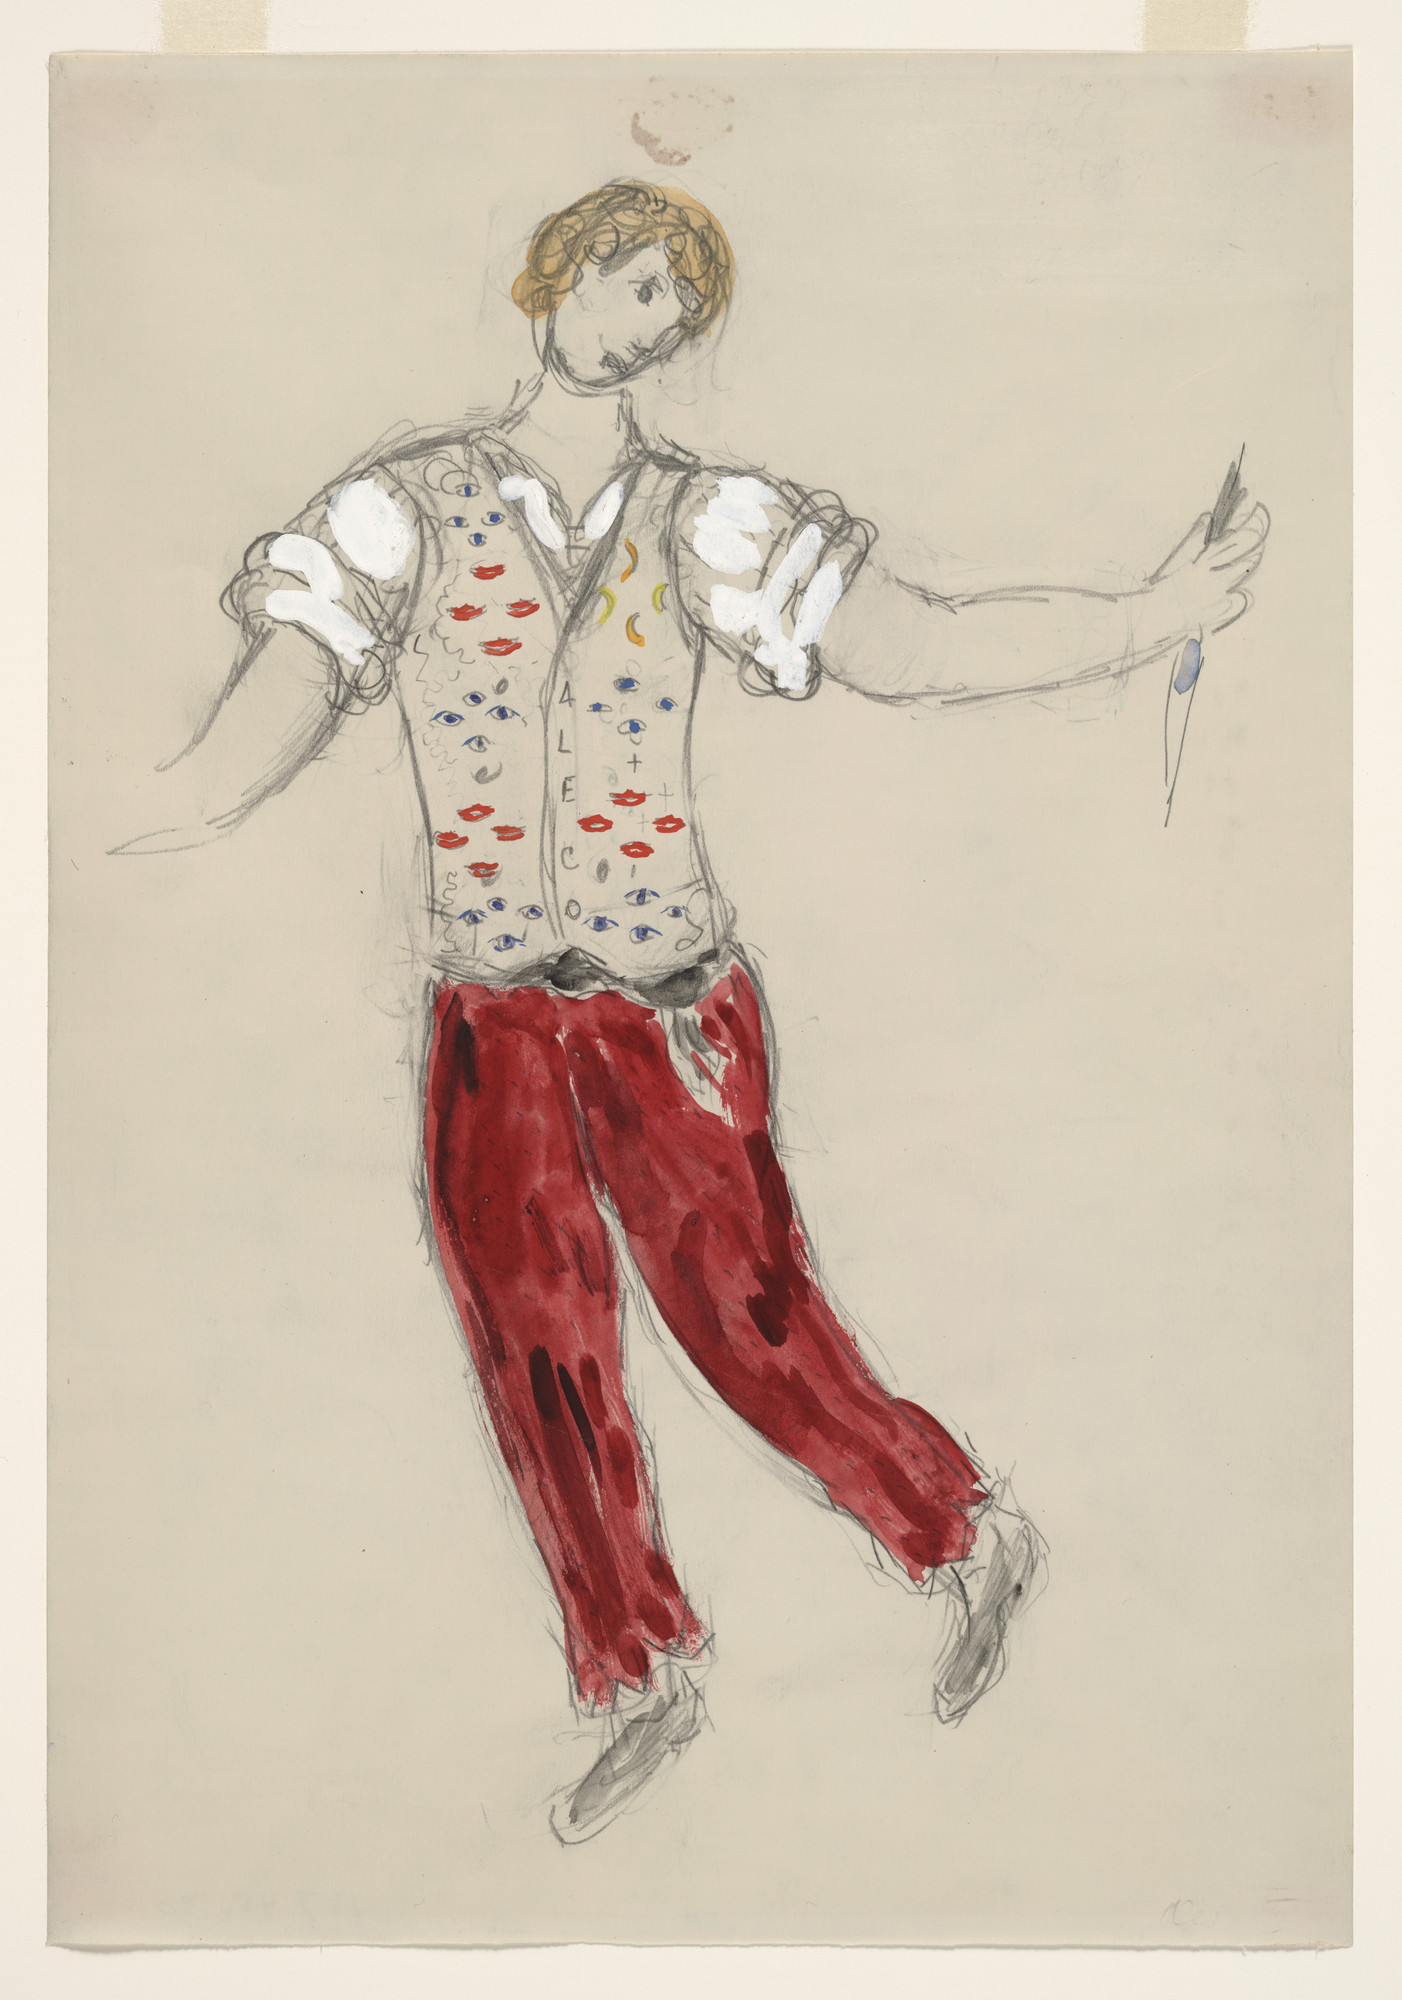 Marc Chagall. Aleko. Costume design for the ballet Aleko. (1942) | MoMA